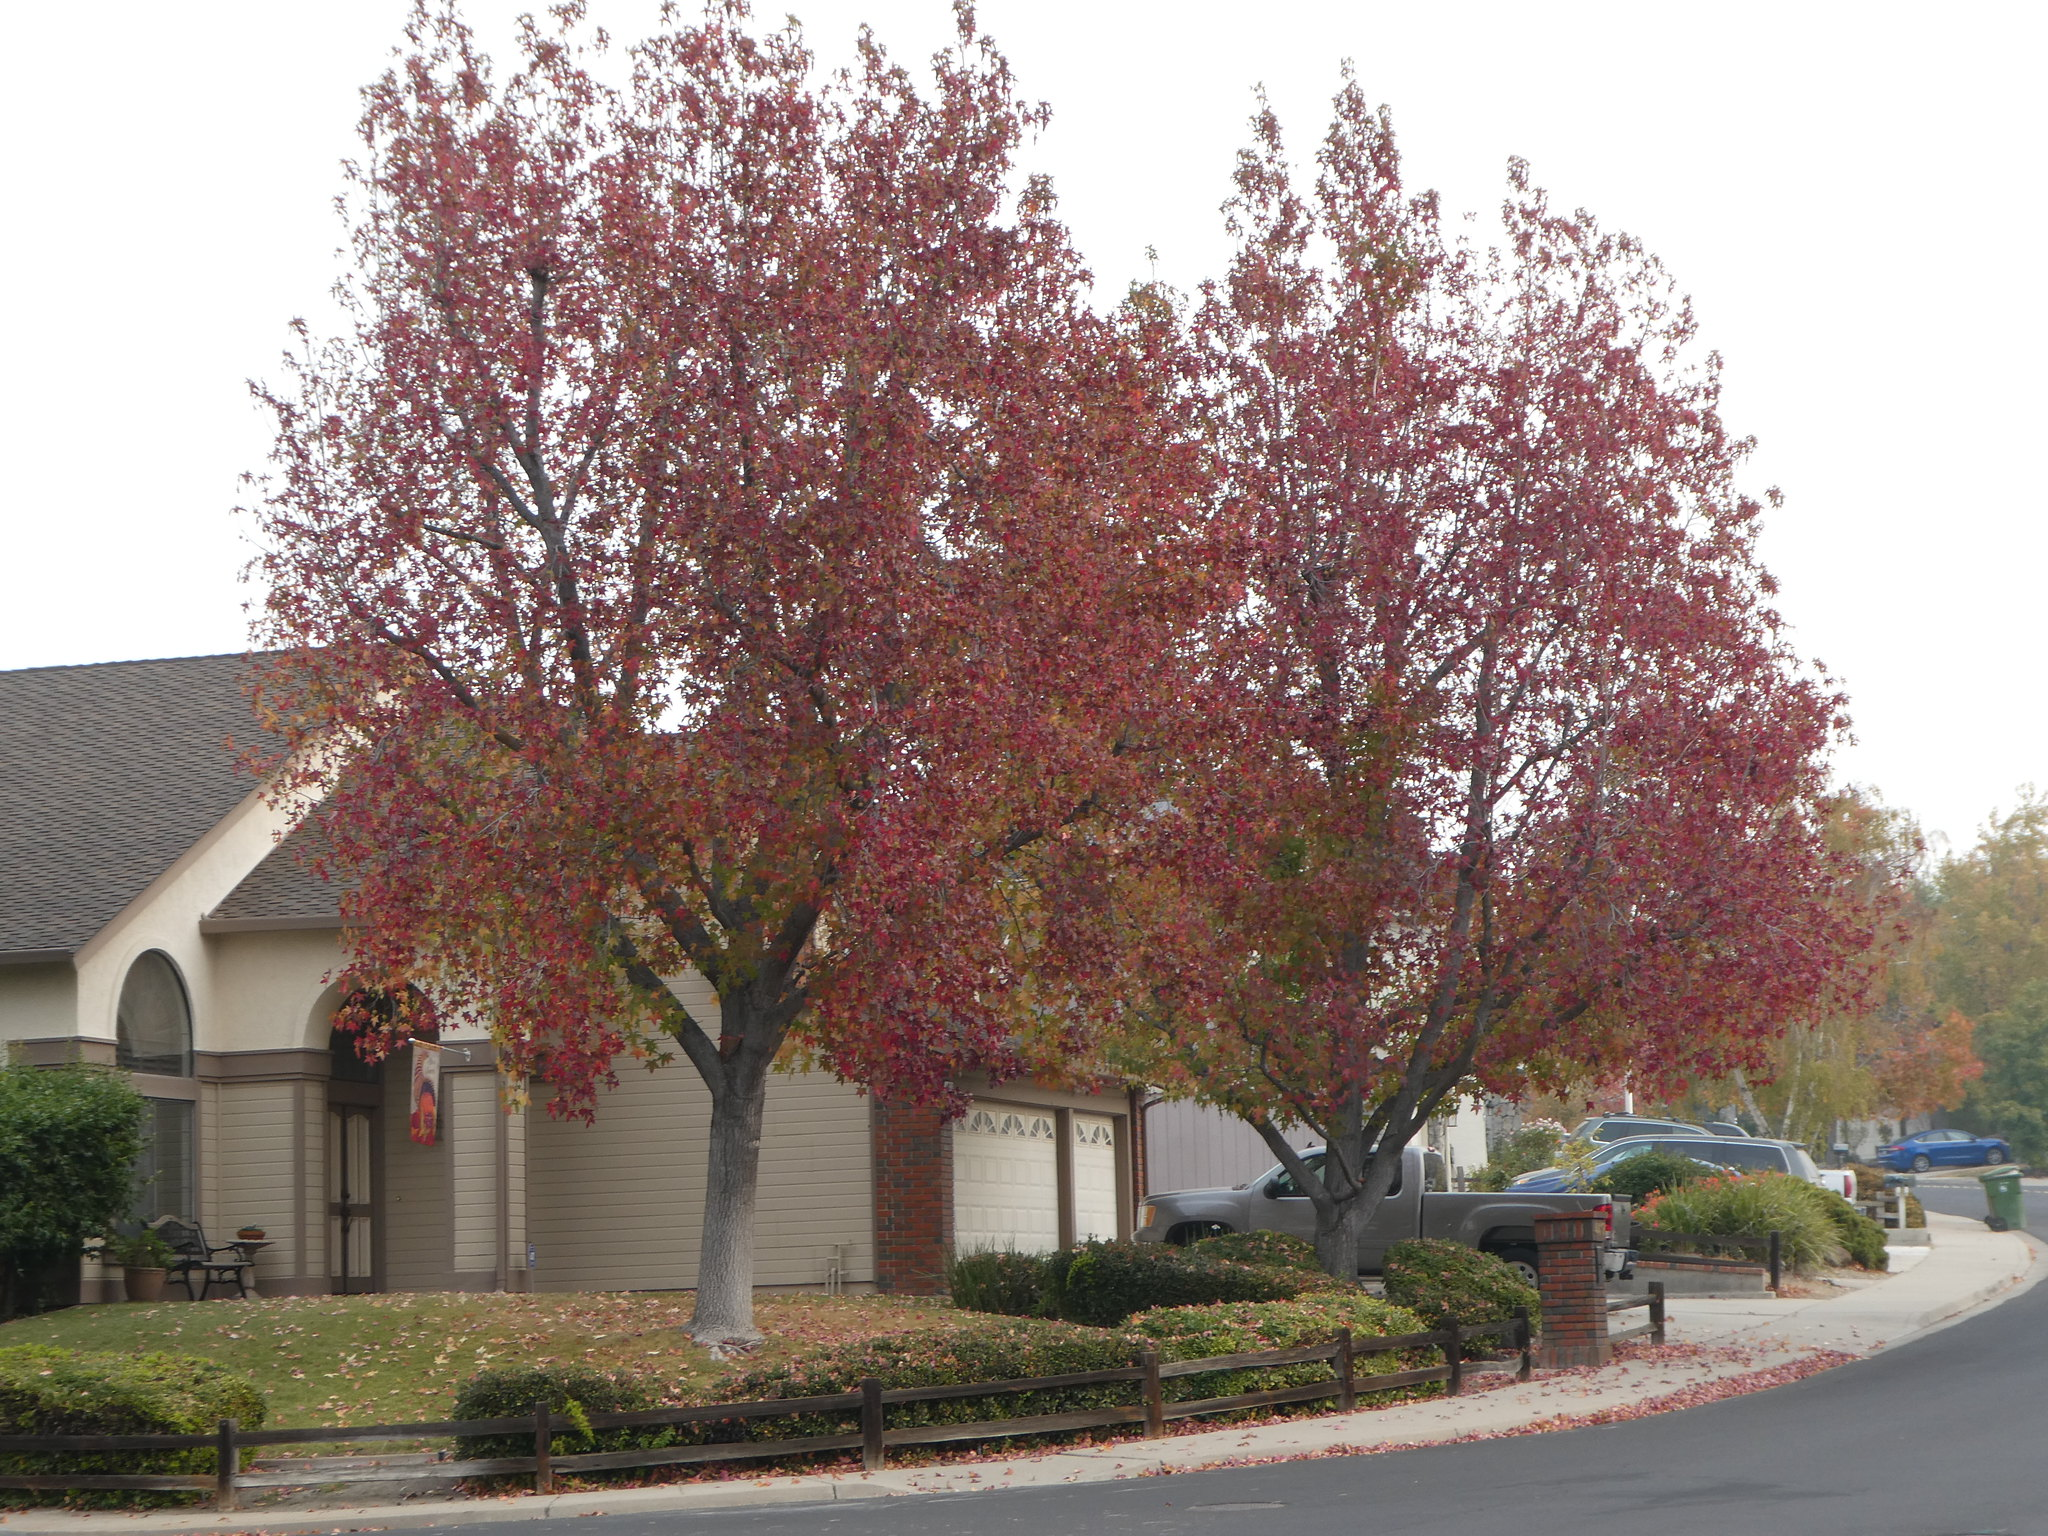 2018-11-13 - Red Leaves Trees